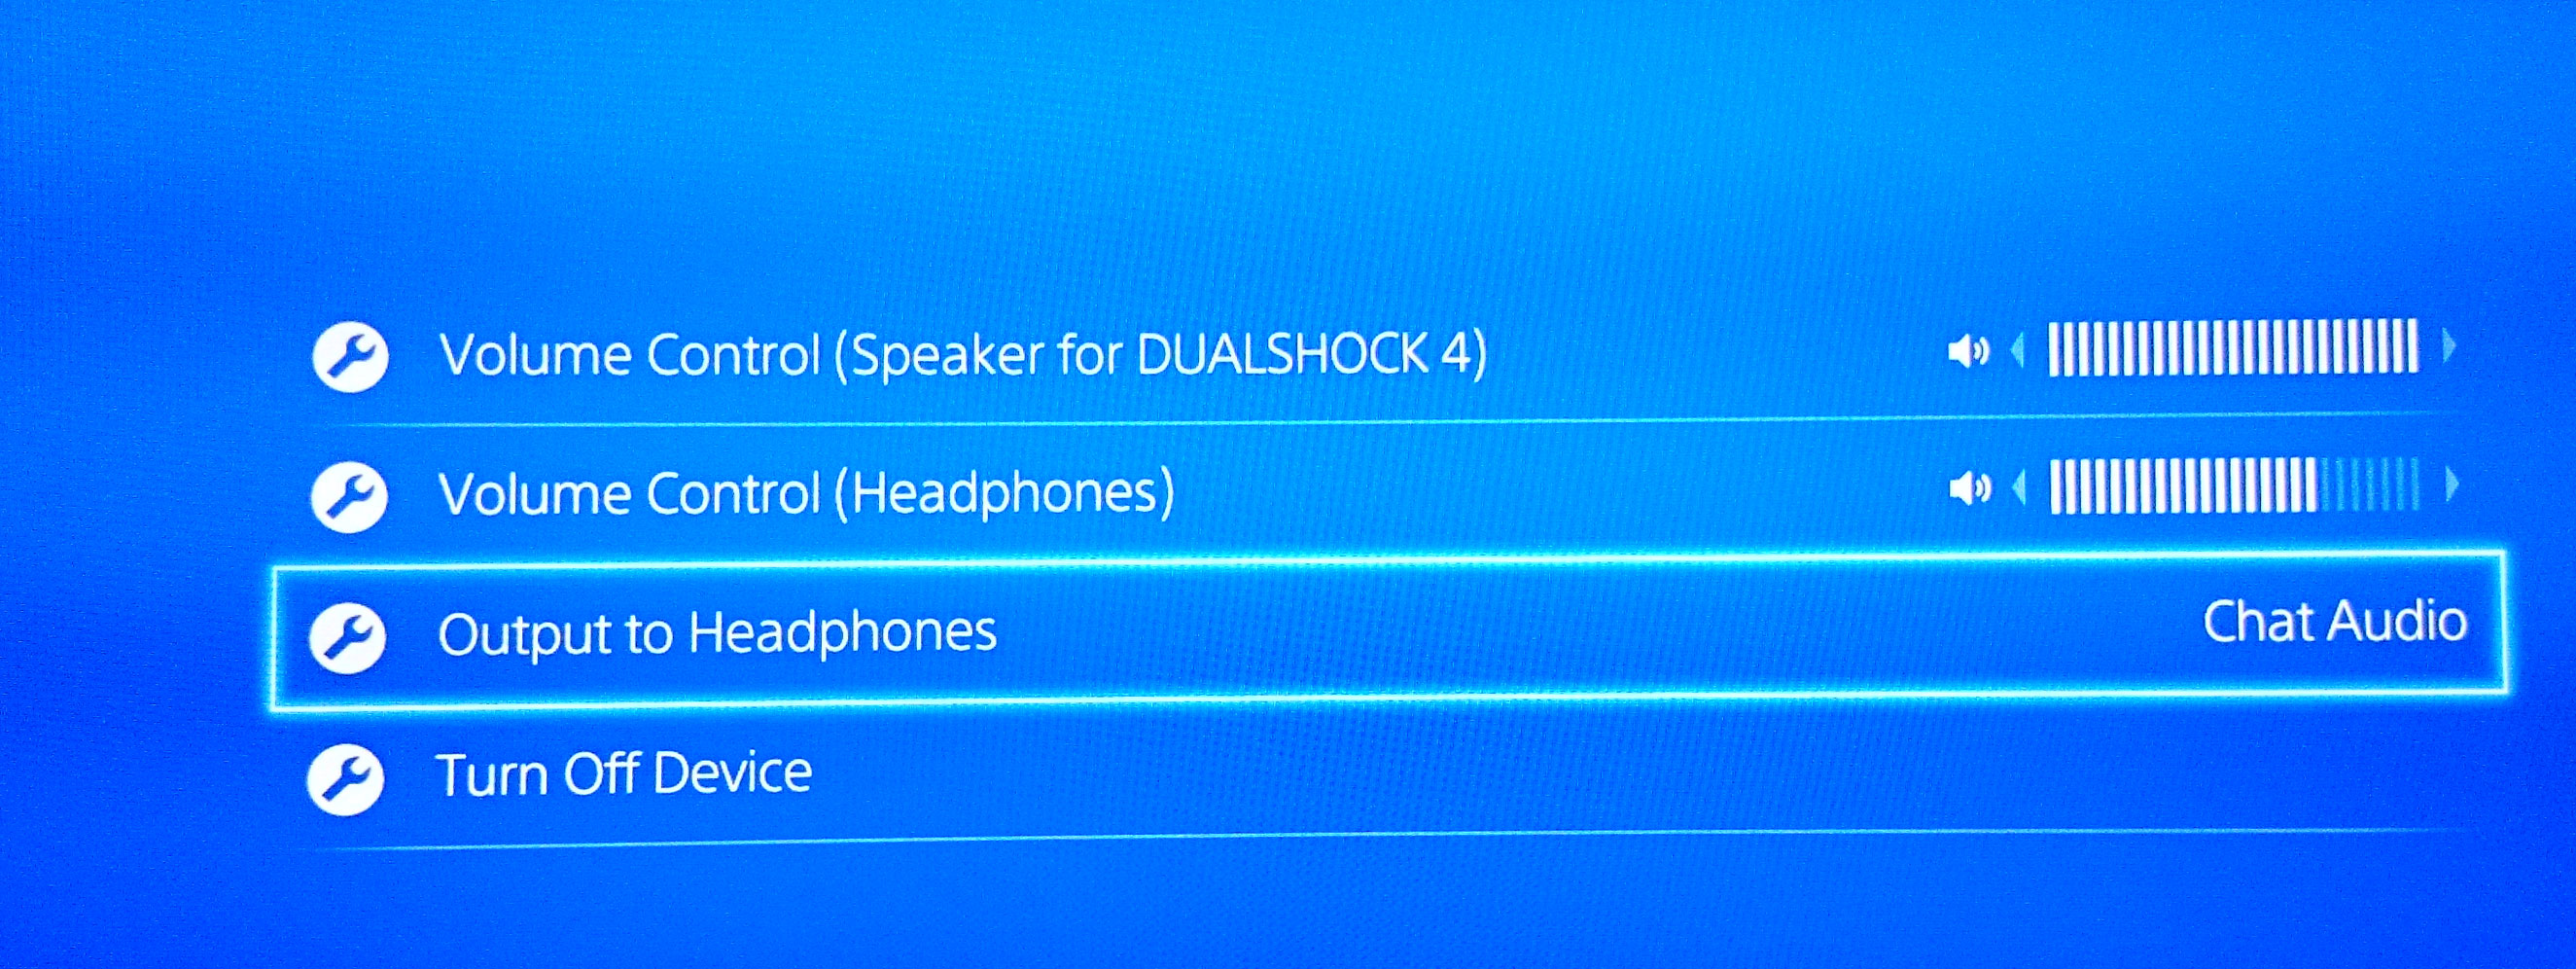 PS4: How to Output All Audio to Headphones Plugged into DualShock 4